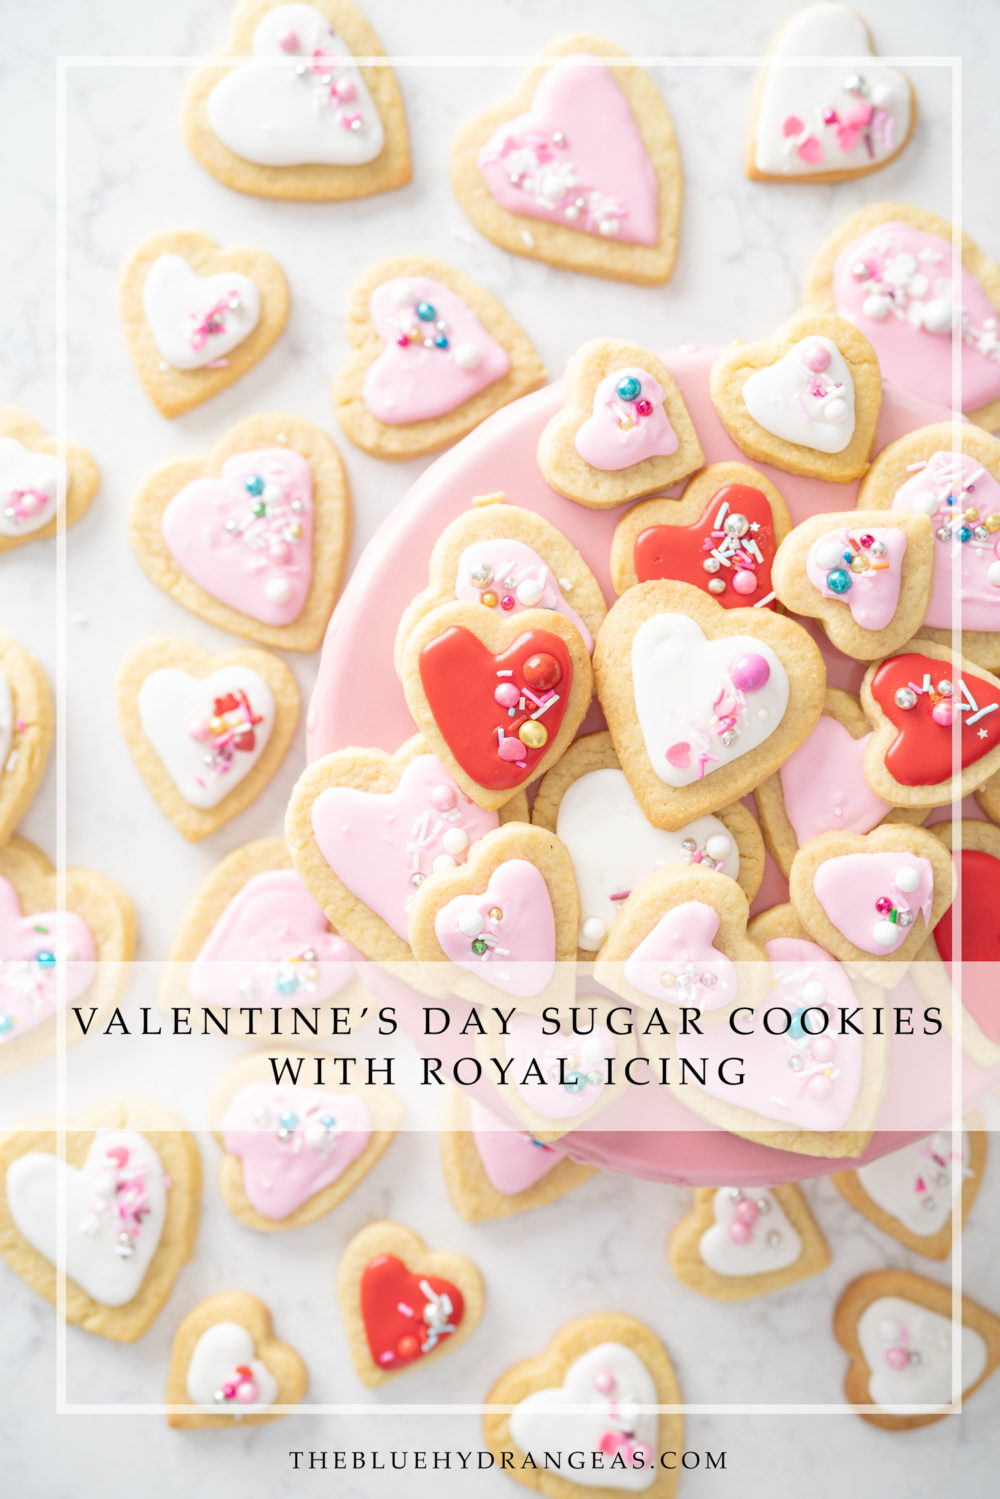 Petite Fashion and Style Blog | Valentine's Day Sugar Cookies | Sugar Cookie Recipe | How to Decorate with Royal Icing | Royal Icing Recipe